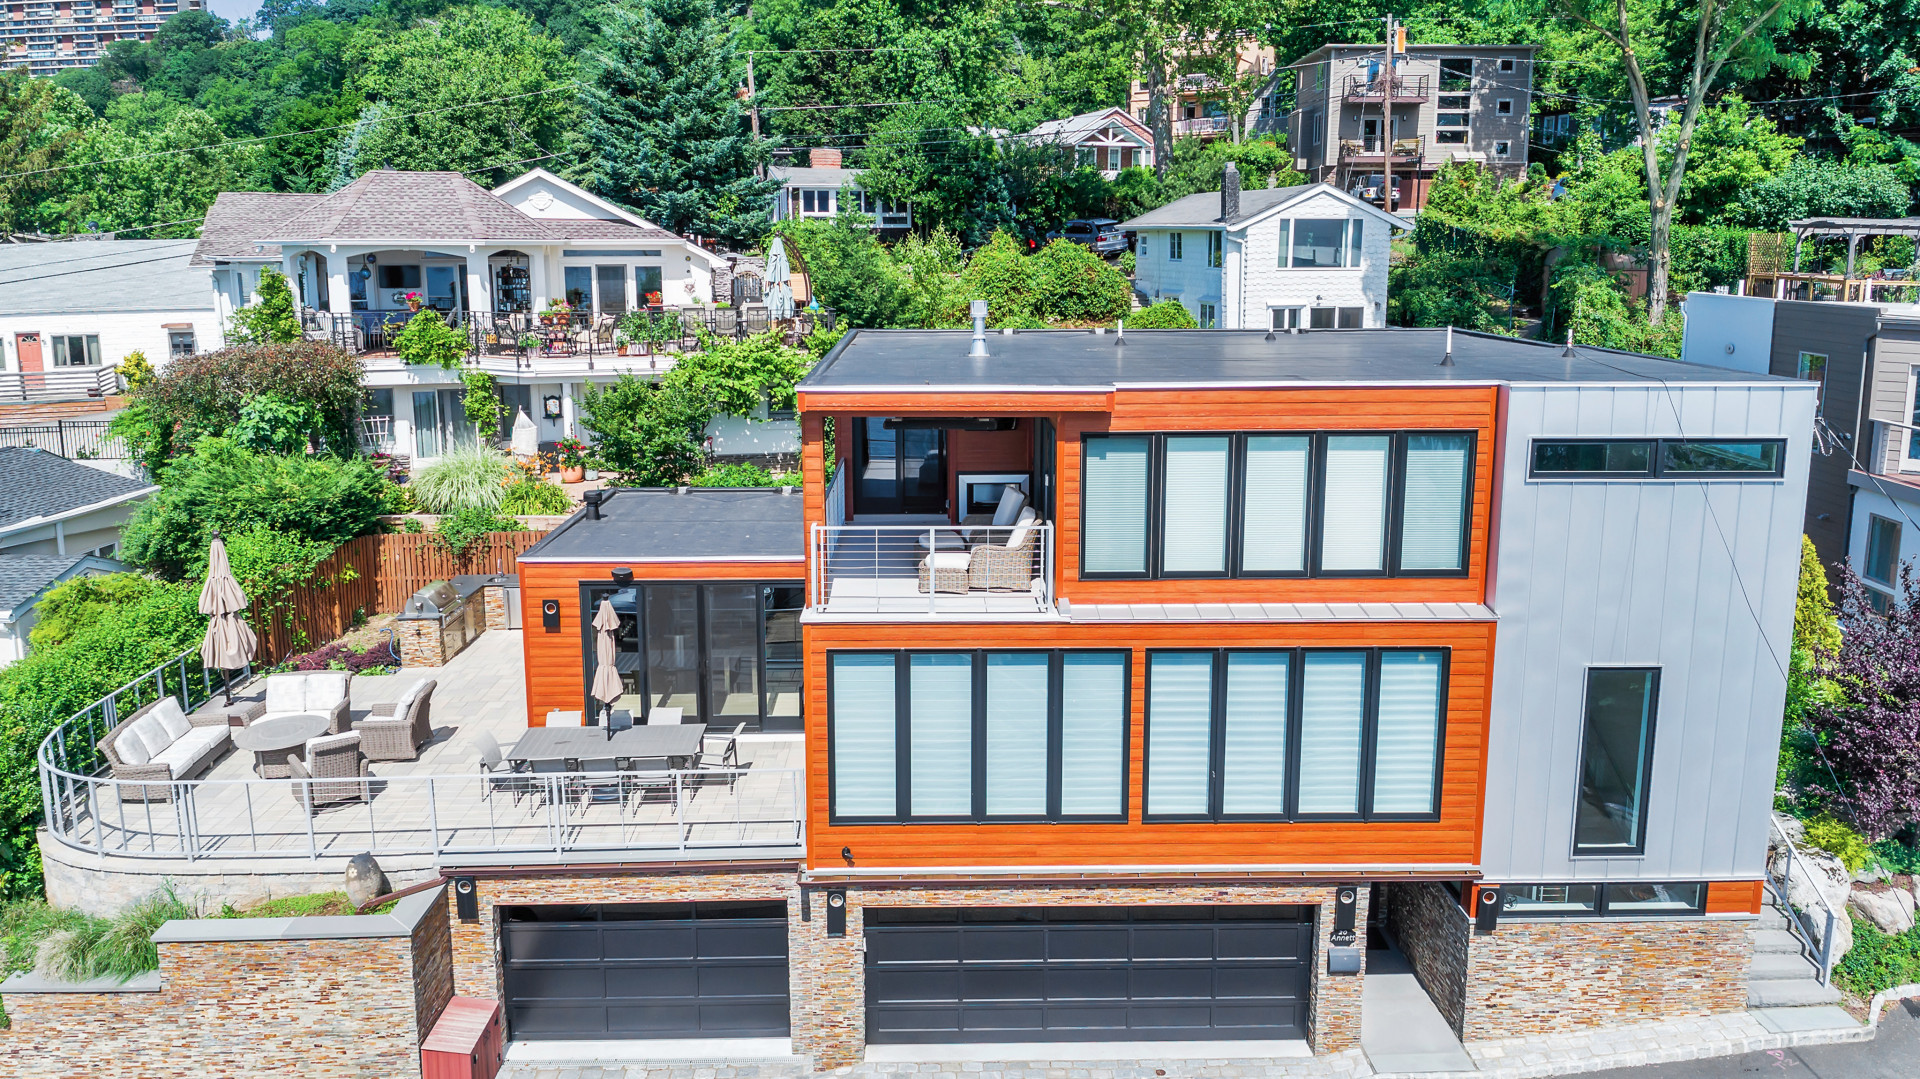 Single Family Home for Sale at An Architectural Masterpiece on the Hudson 20 Annett Ave Edgewater, New Jersey 07020 United States